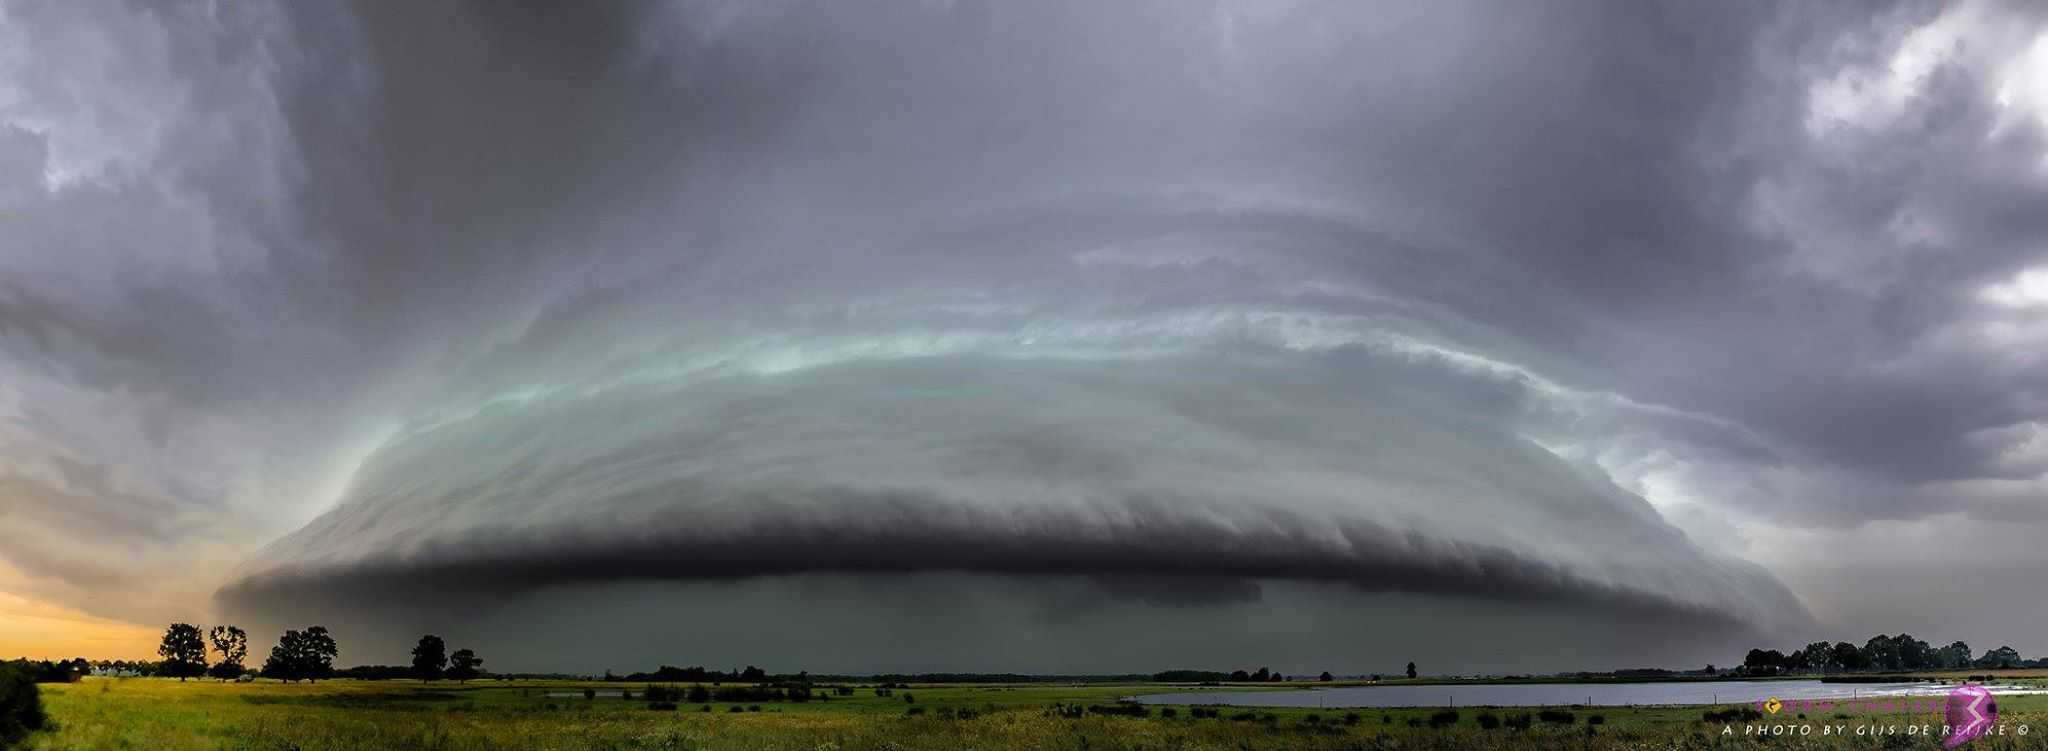 This very photogenic shelf cloud was photographed near the Dutch village of Chaam on June 5 of this year.